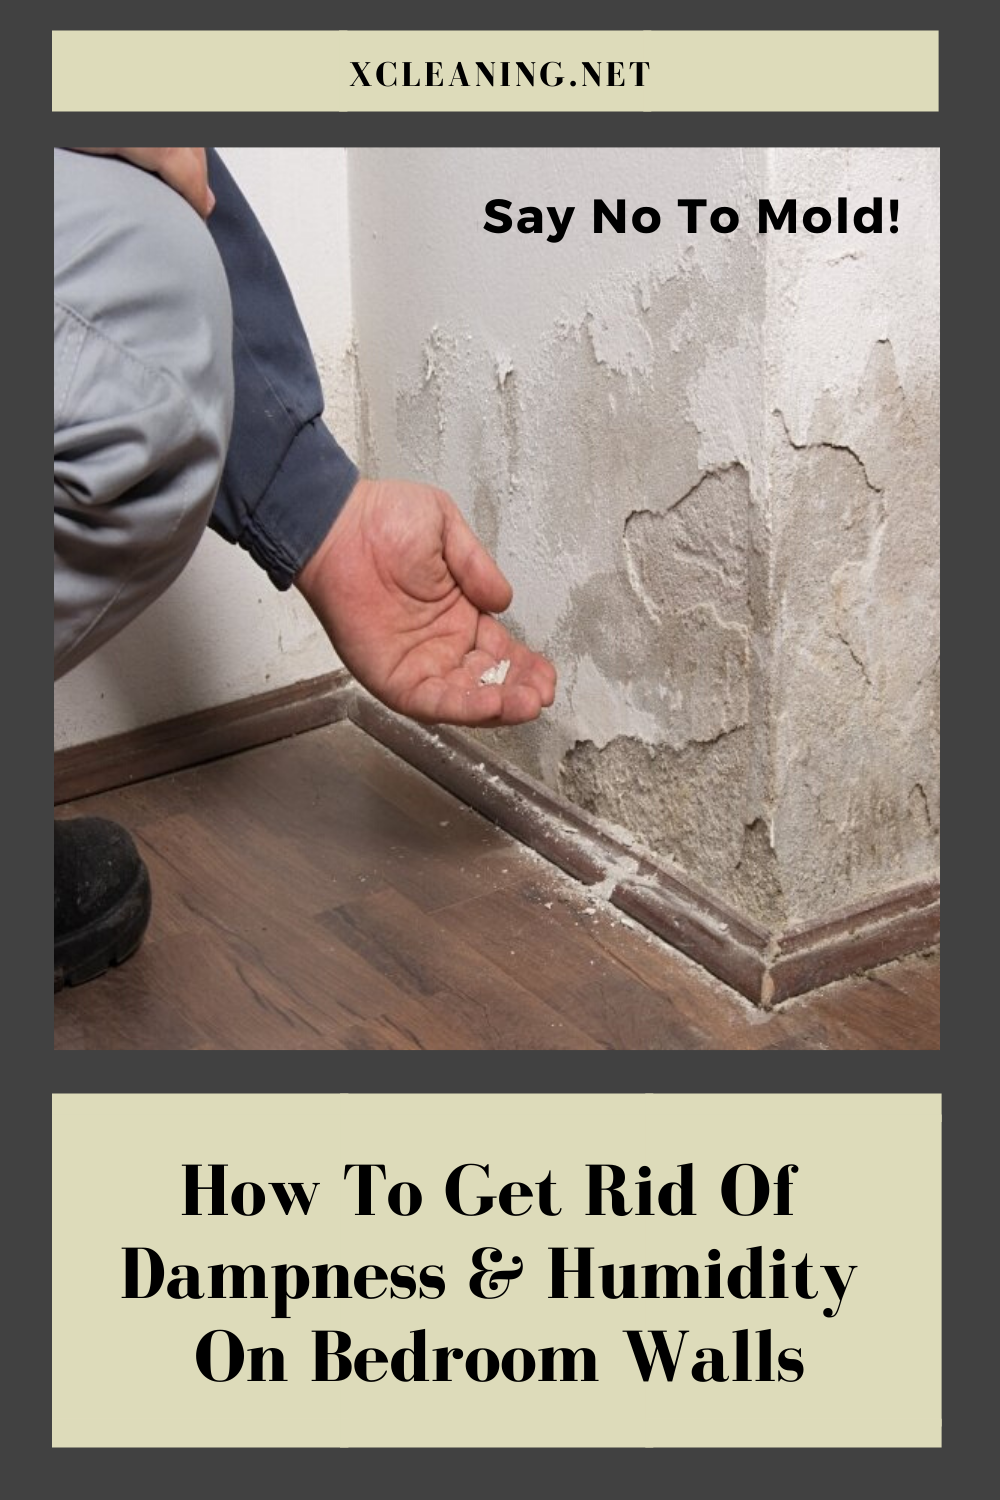 Say Mold How Get Rid Dampness And Humidity Bedroom Walls Xcleaning Your